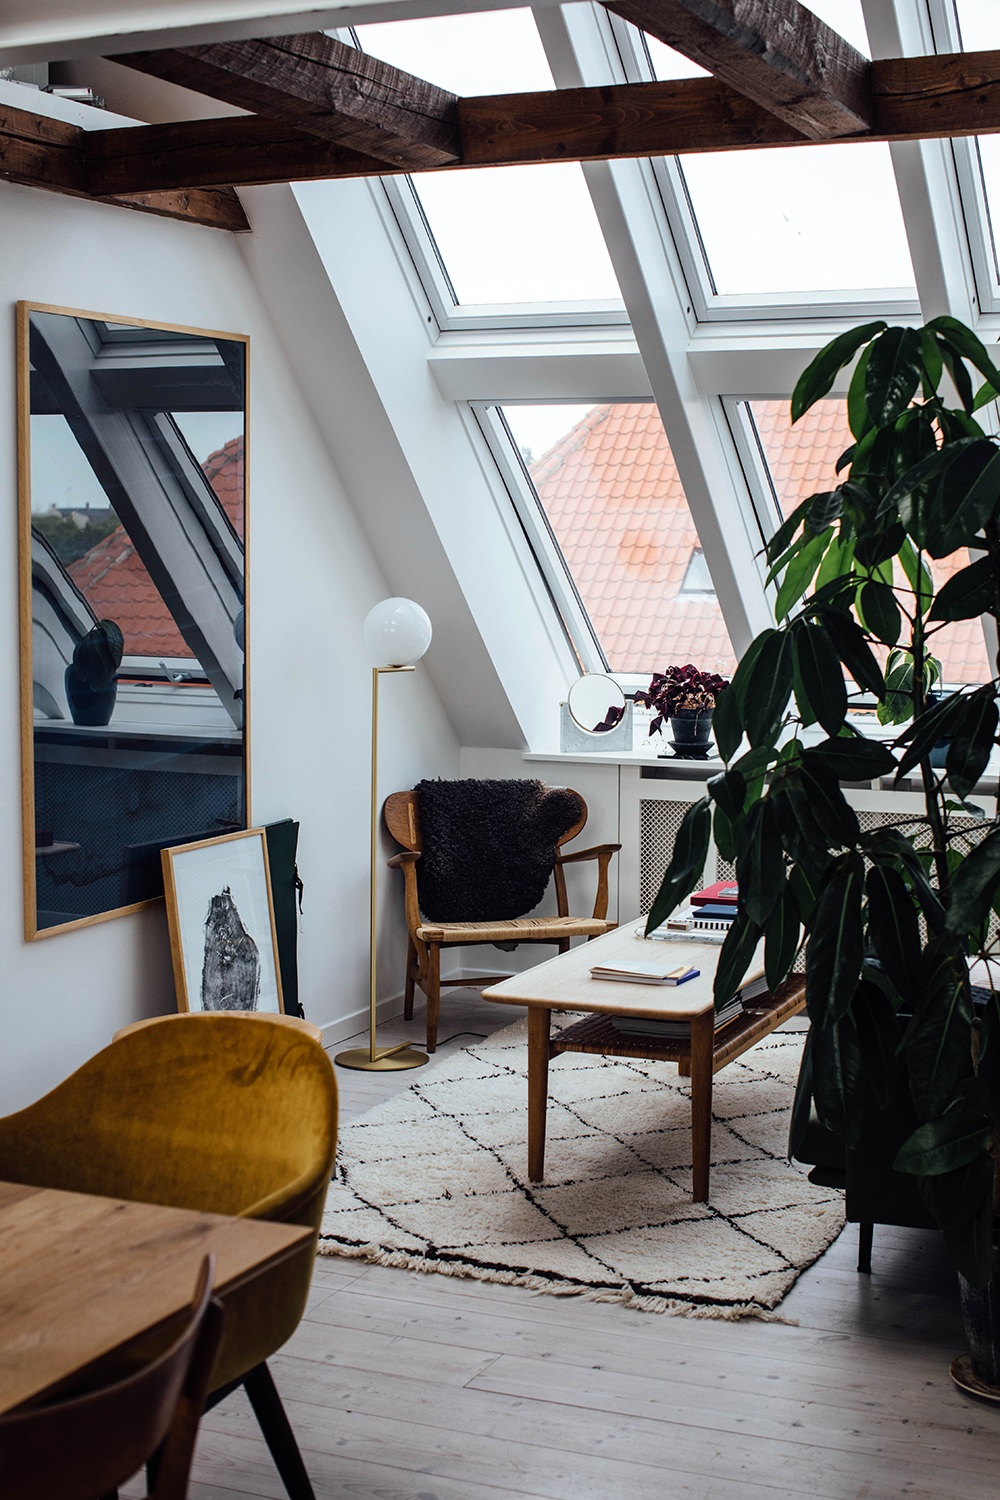 Home Tour with Line Borella in Copenhagen